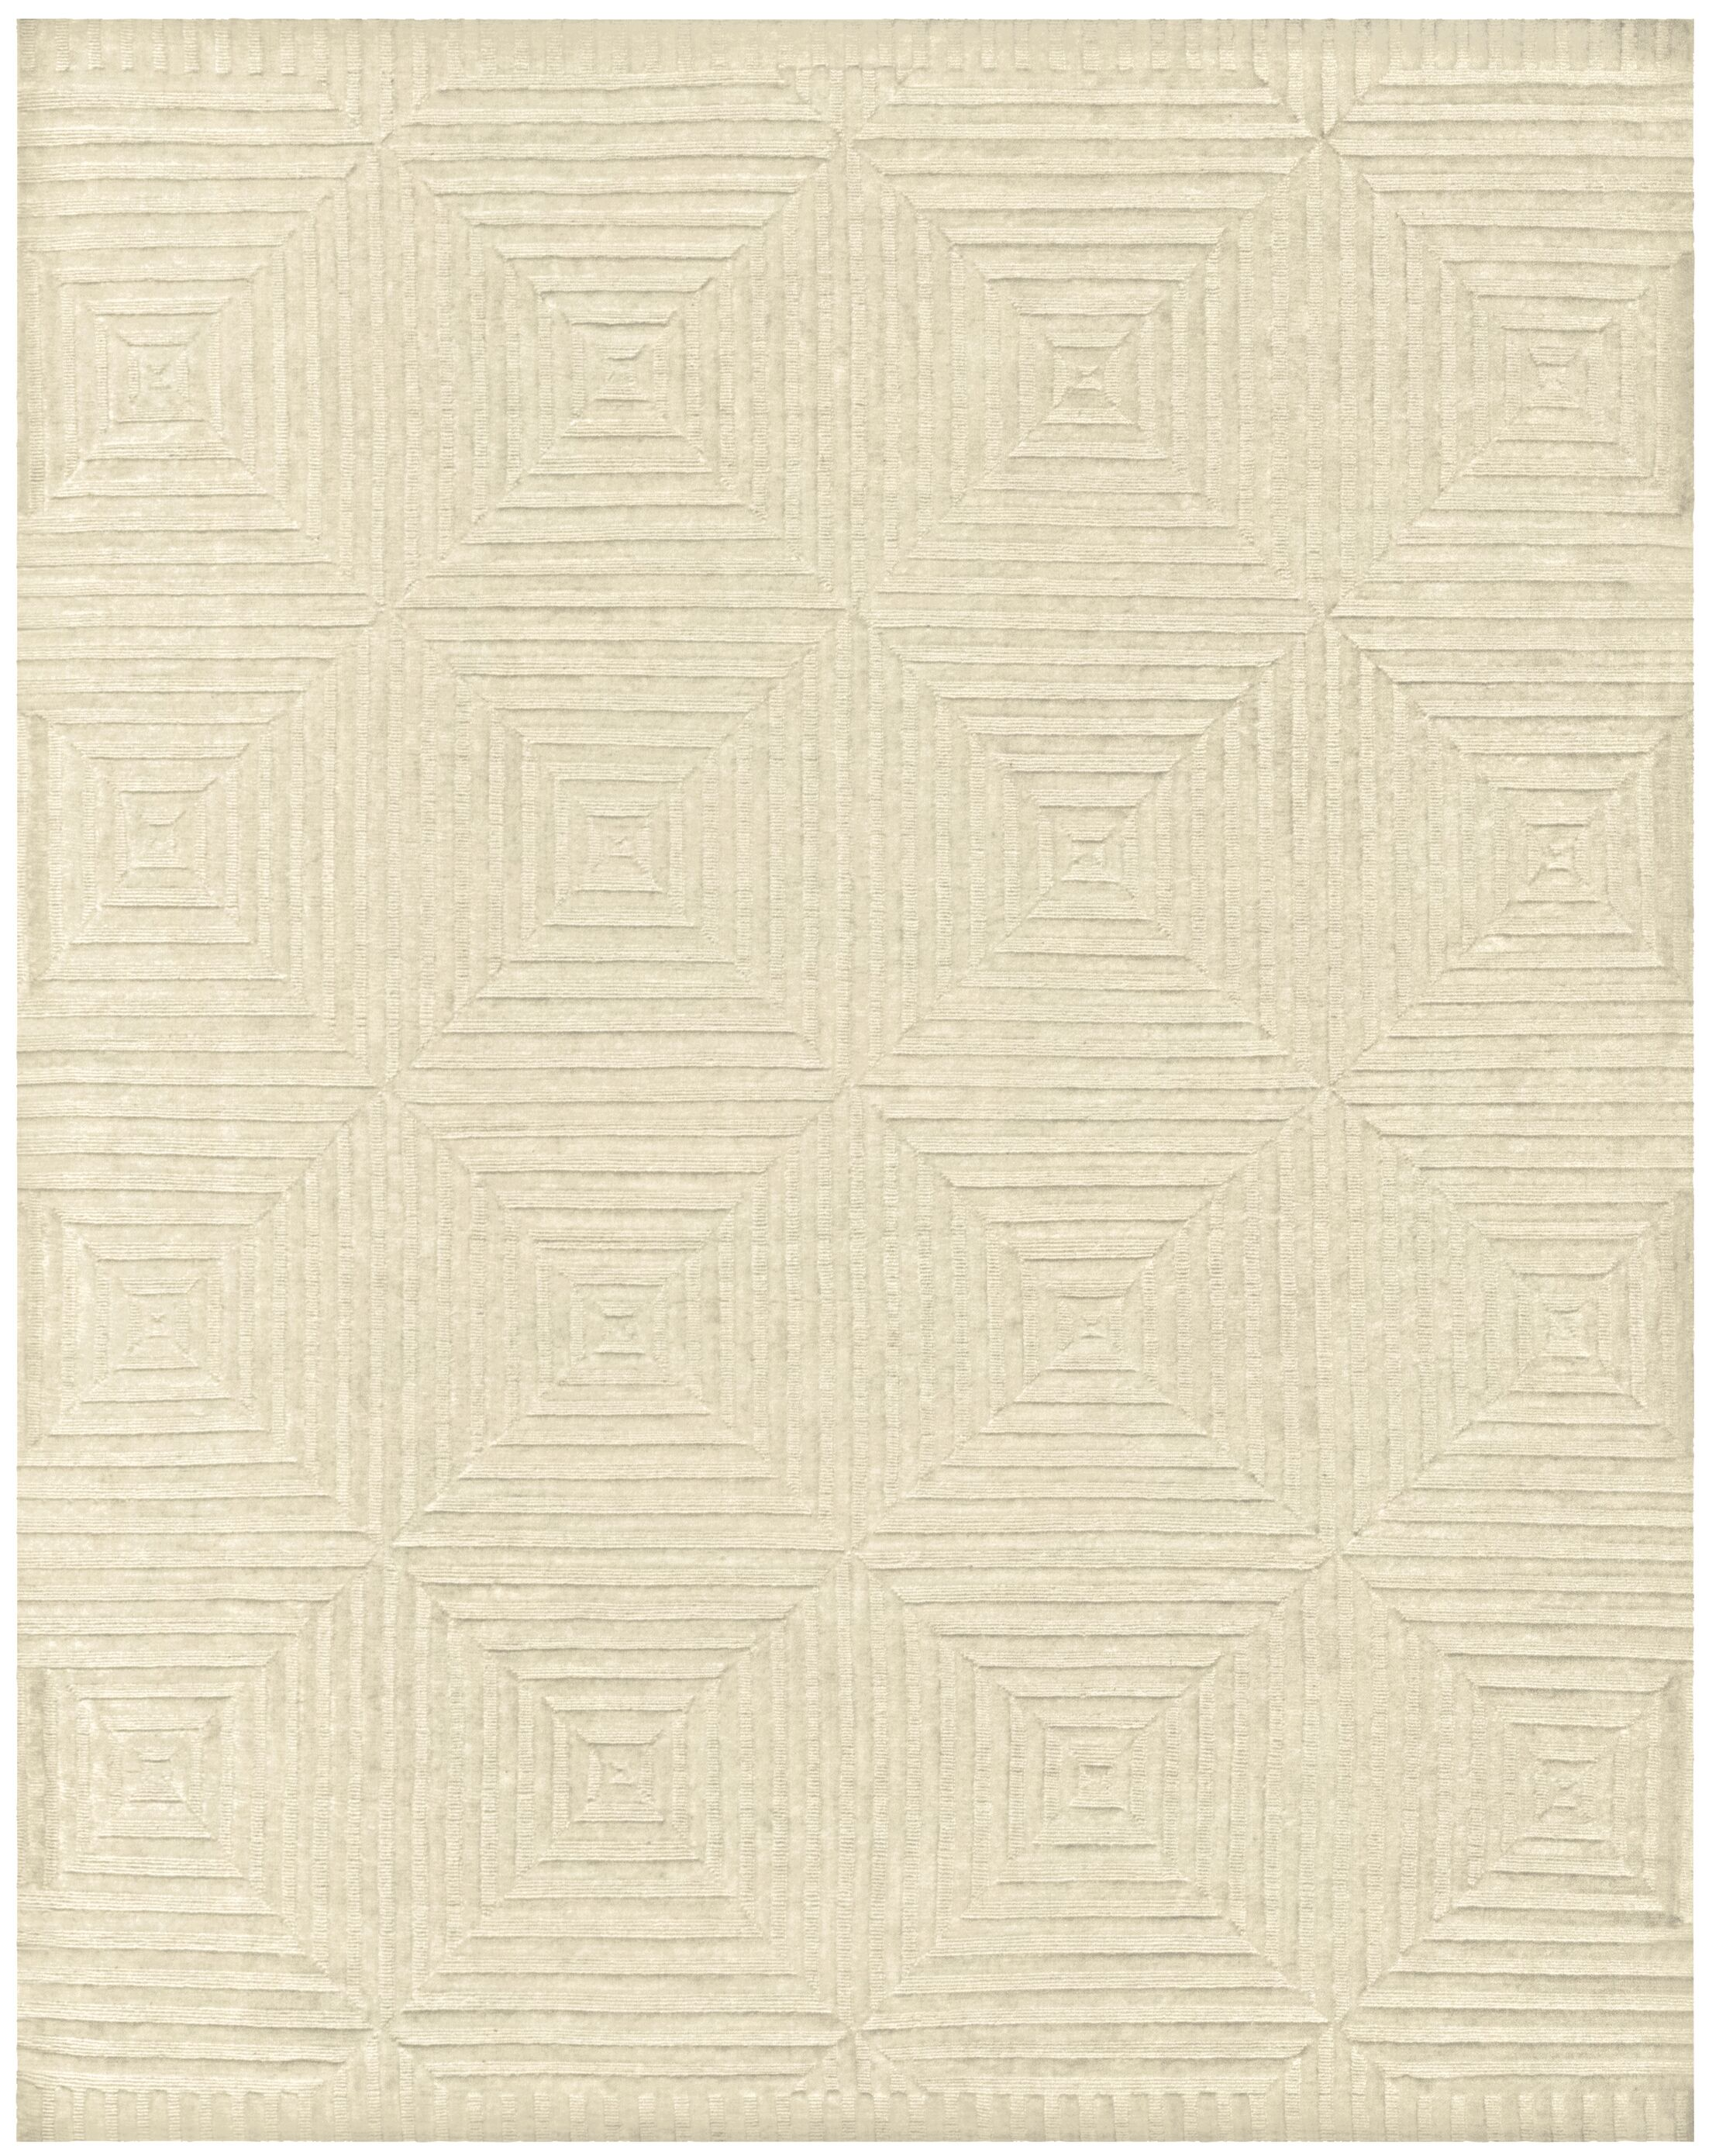 Lapis Hand-Knotted Ivory Area Rug Rug Size: Rectangle 4' x 6'